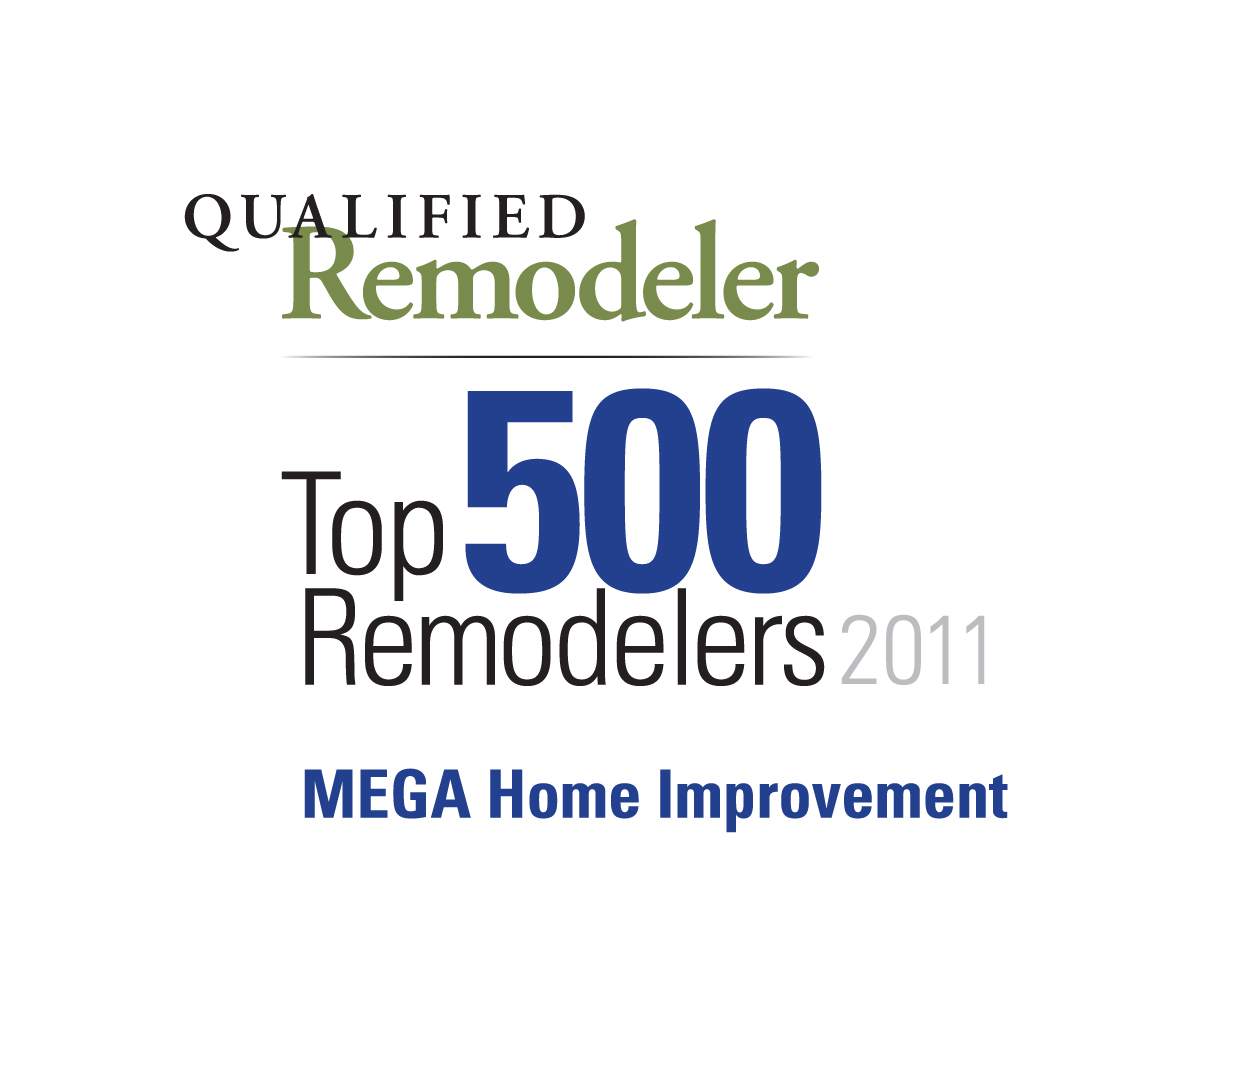 Best Home Improvements: MEGA Home Improvement Receives Two Prestigious Honors From